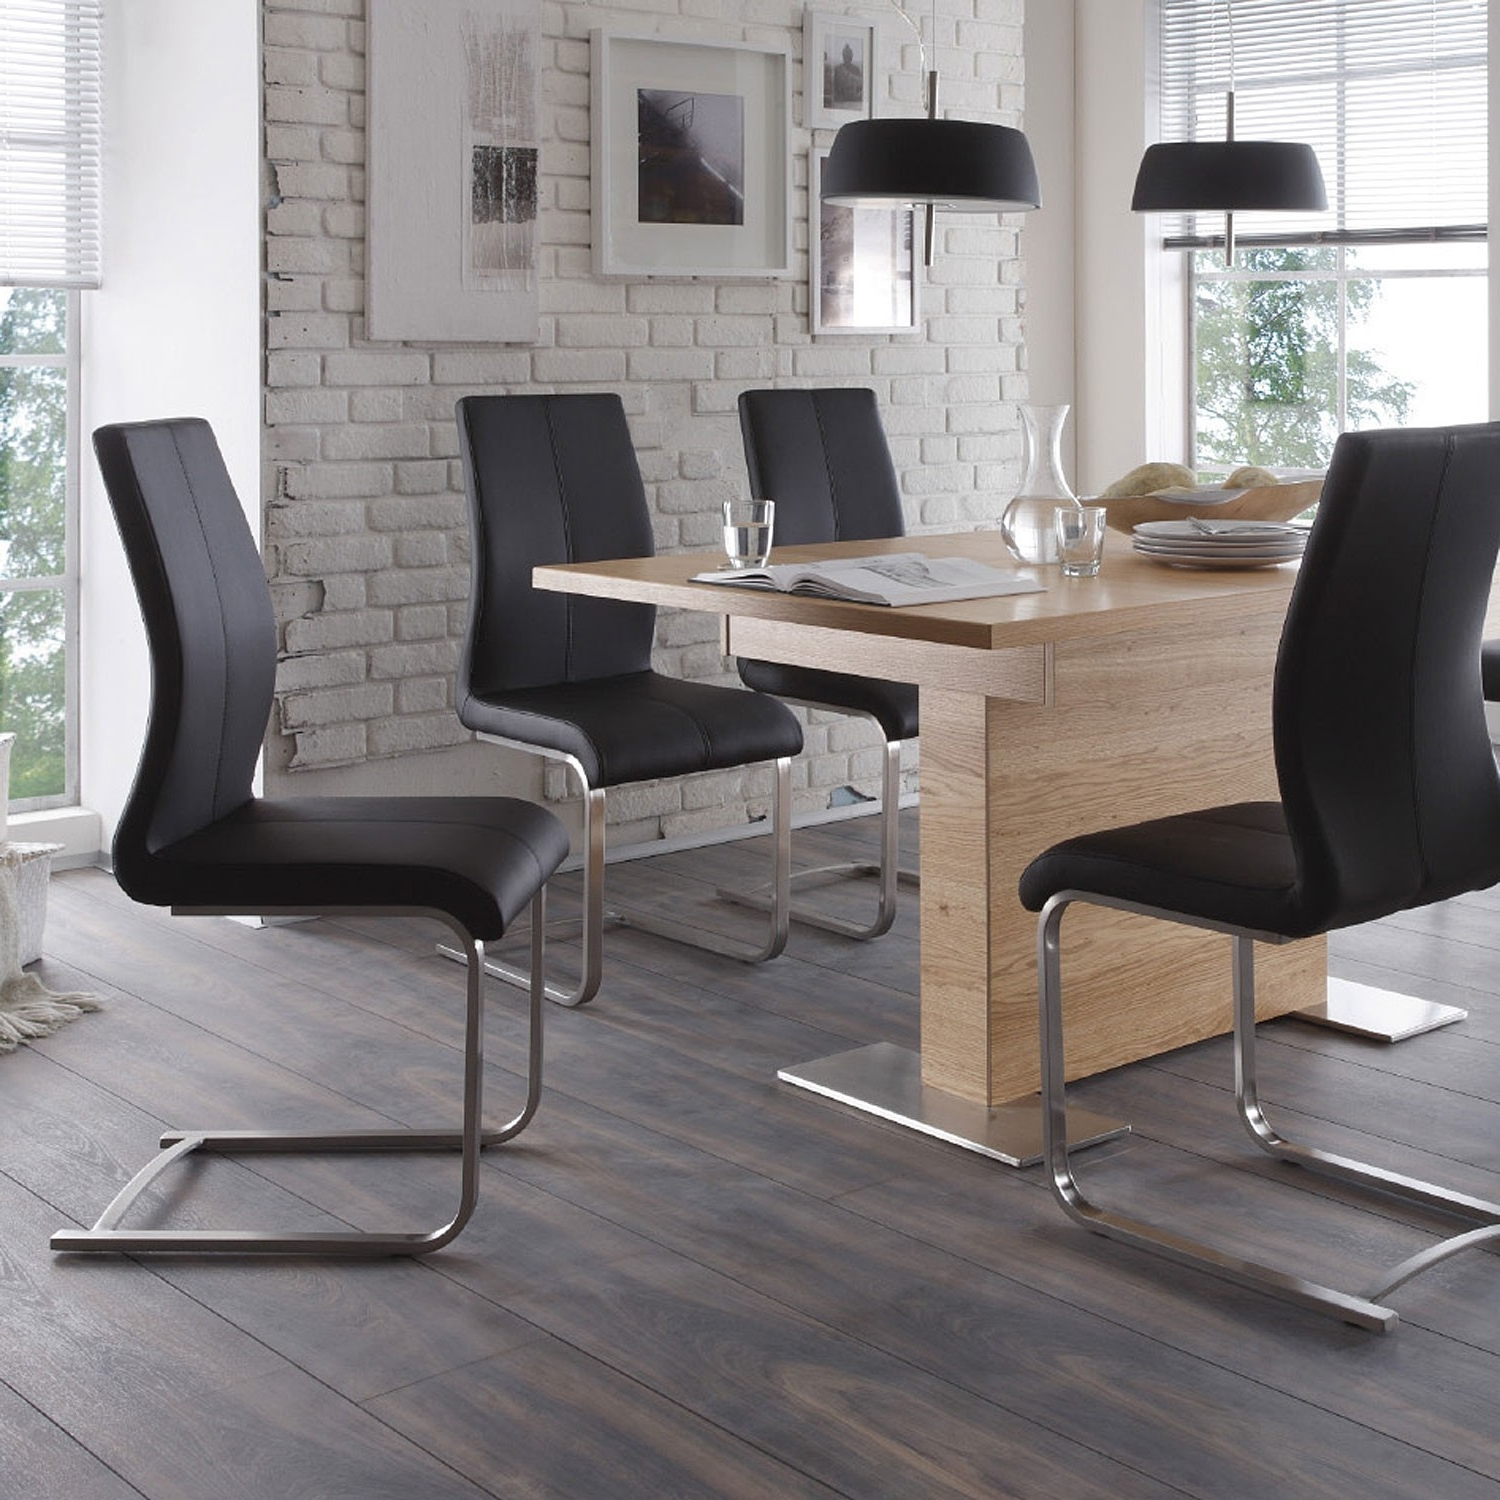 Tr Hayes – Furniture Store, Bath Throughout Well Known Real Leather Dining Chairs (View 9 of 25)